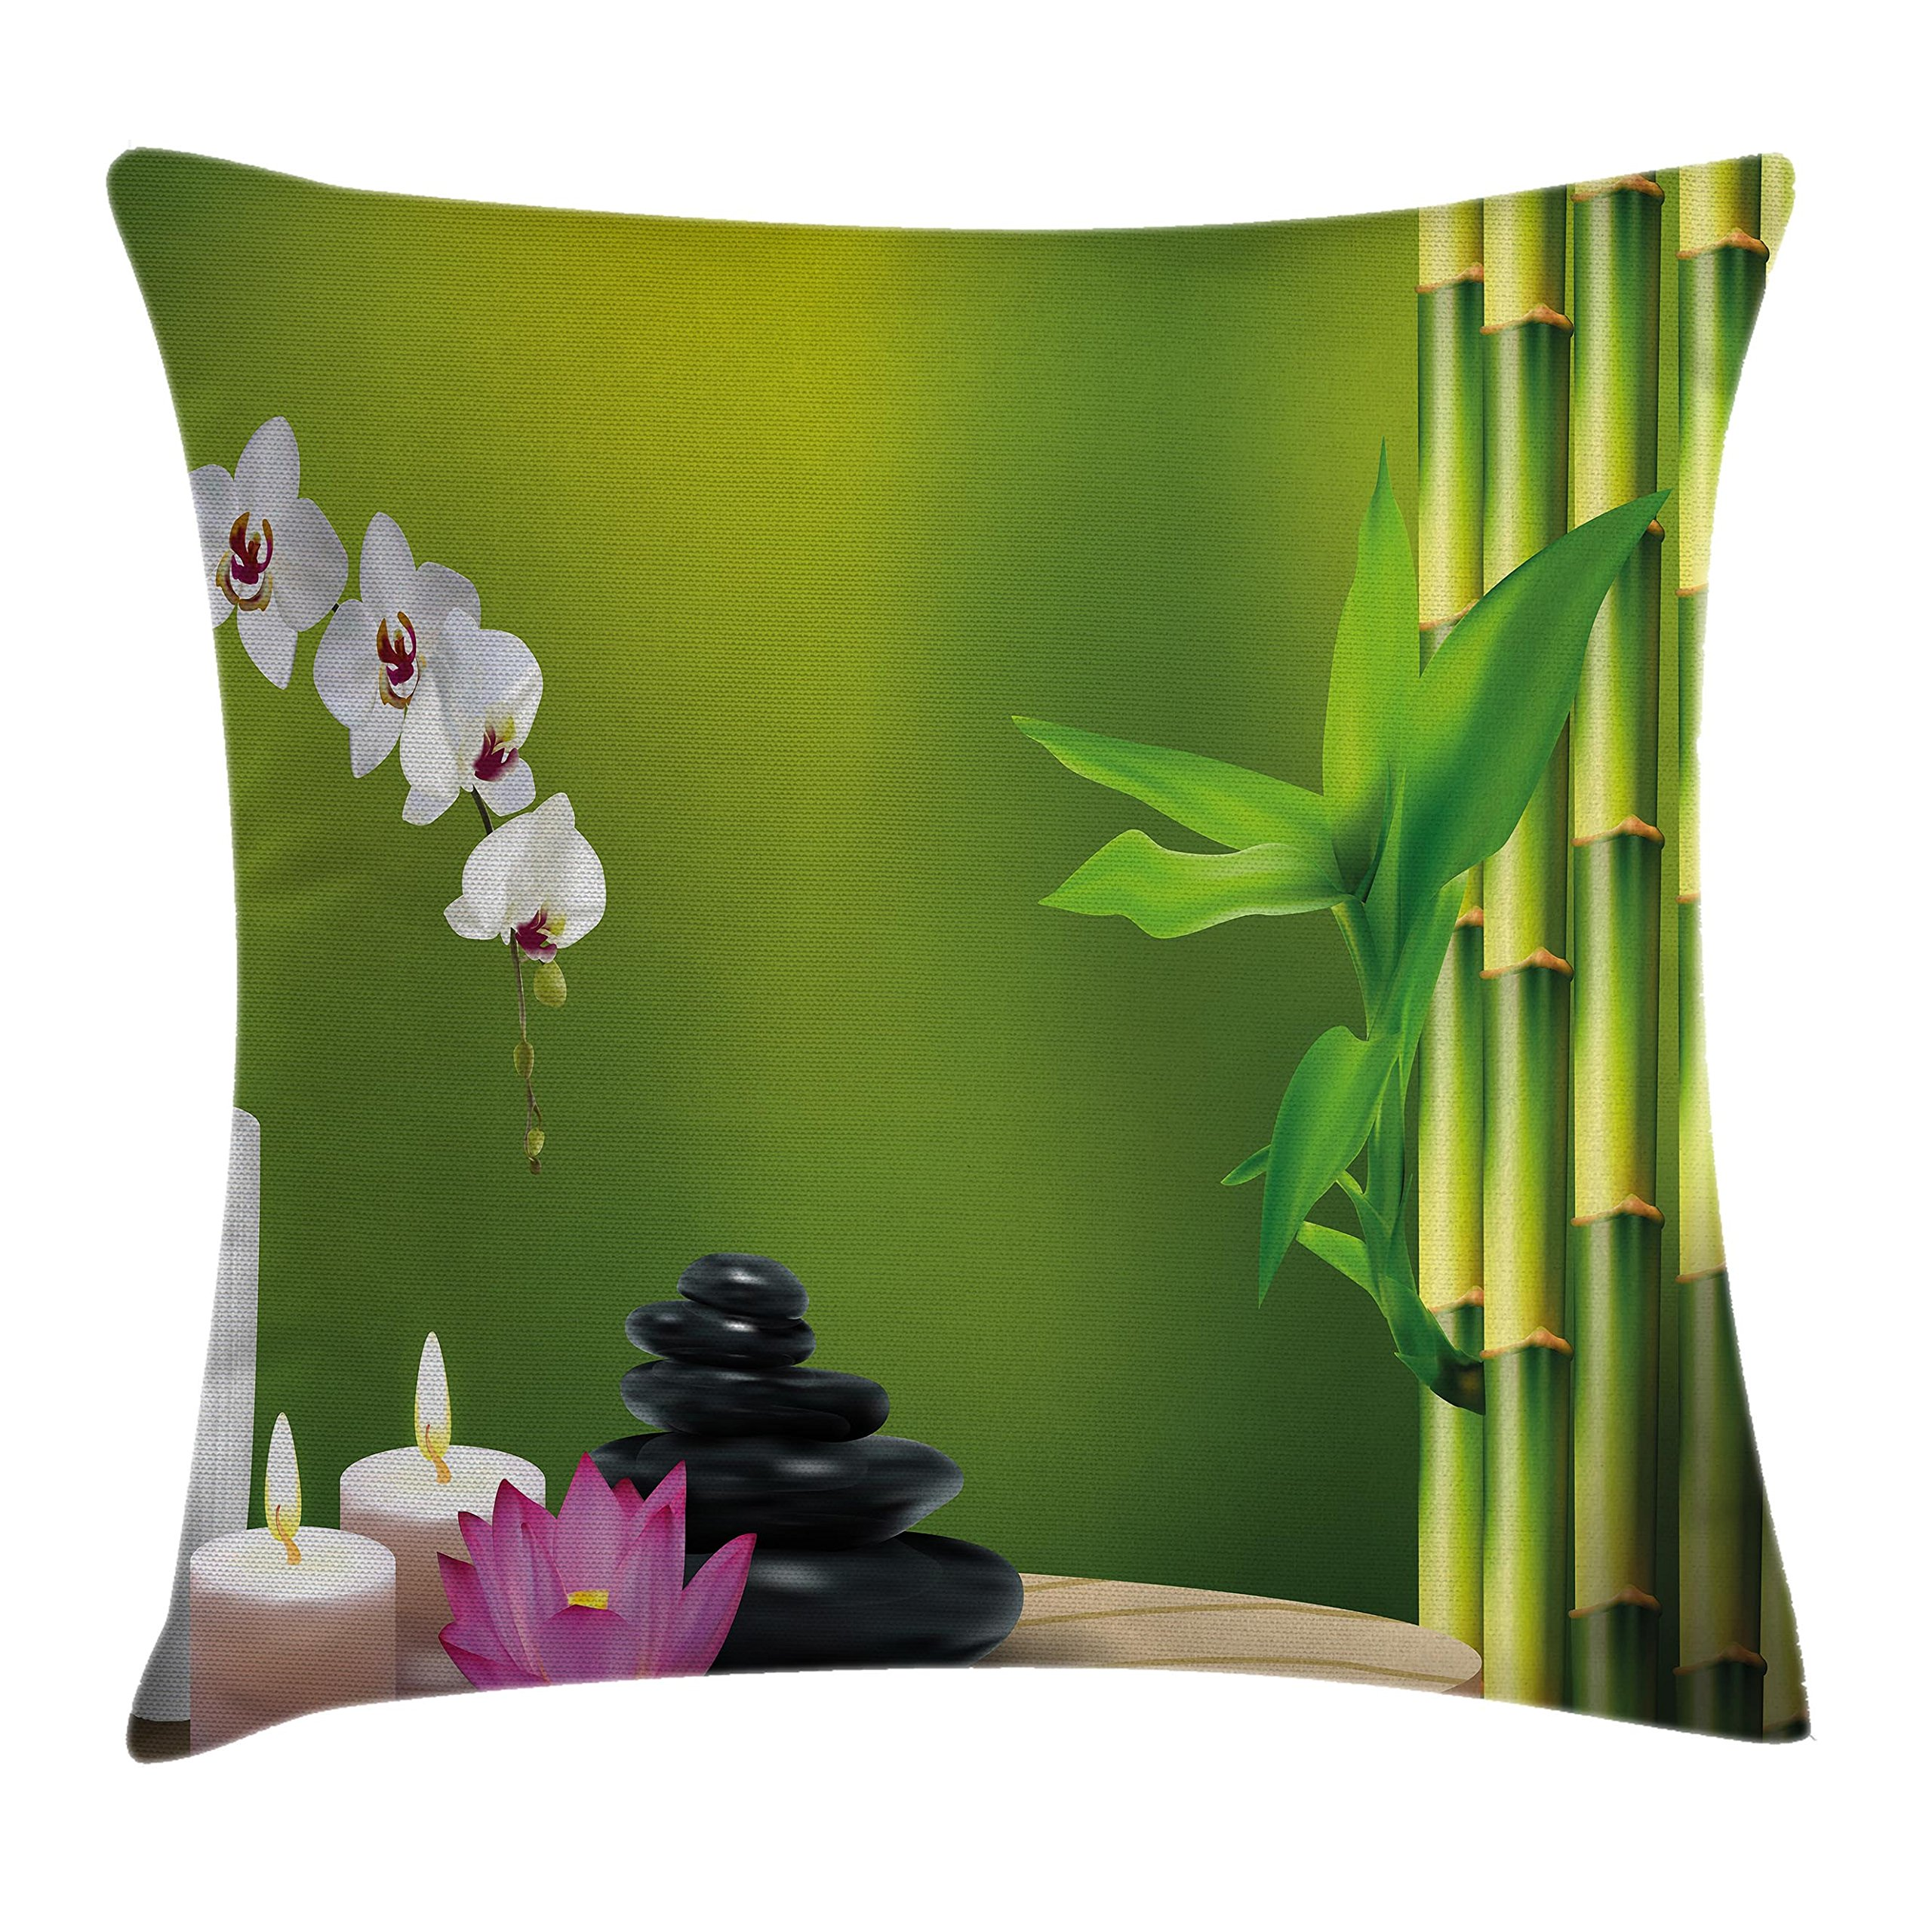 Ambesonne Spa Throw Pillow Cushion Cover, Bamboo Flower Stone Wax on The Table Orchid Rock Healthy Lifestyle Theme, Decorative Square Accent Pillow Case, 18 X 18 Inches, Fern Green Fuchsia White